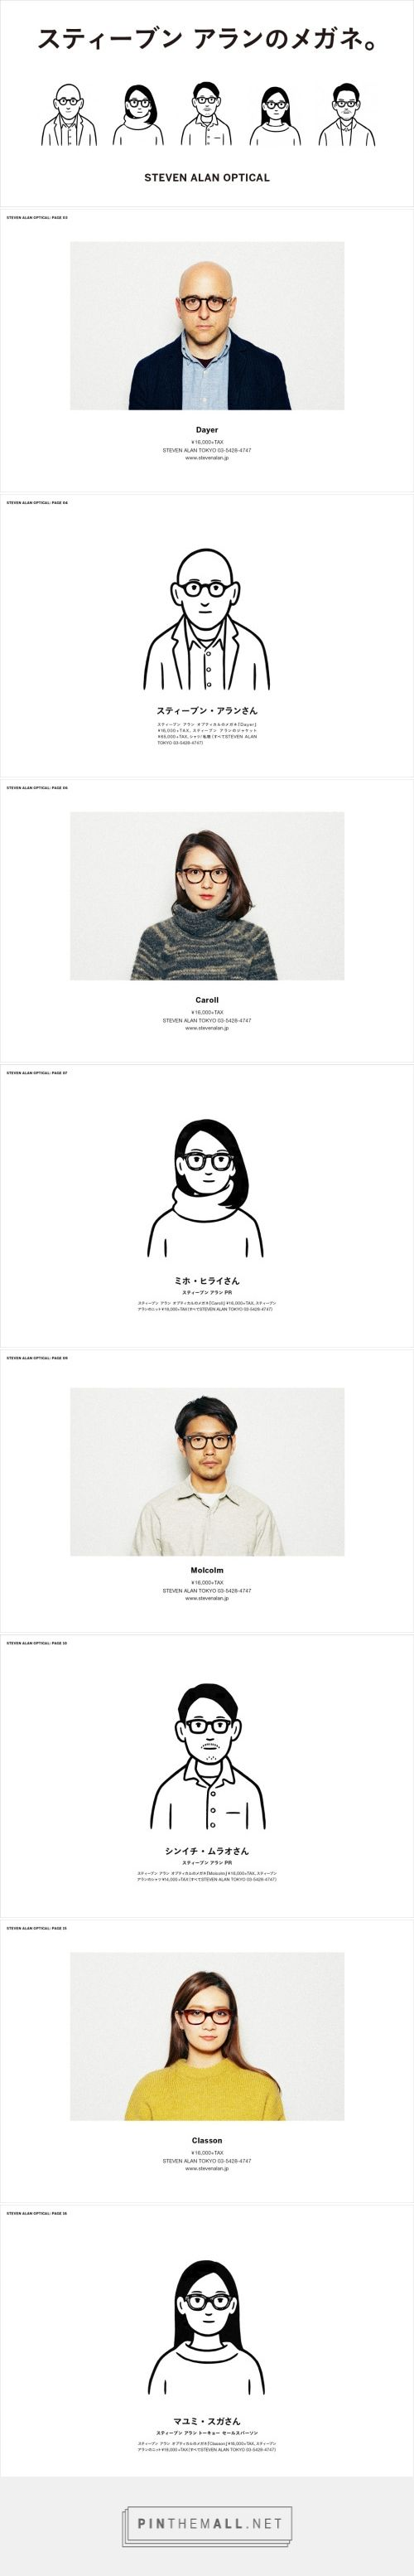 http://noritake-taiwan.tumblr.com/post/103624656001/feature-steven-alan-optical